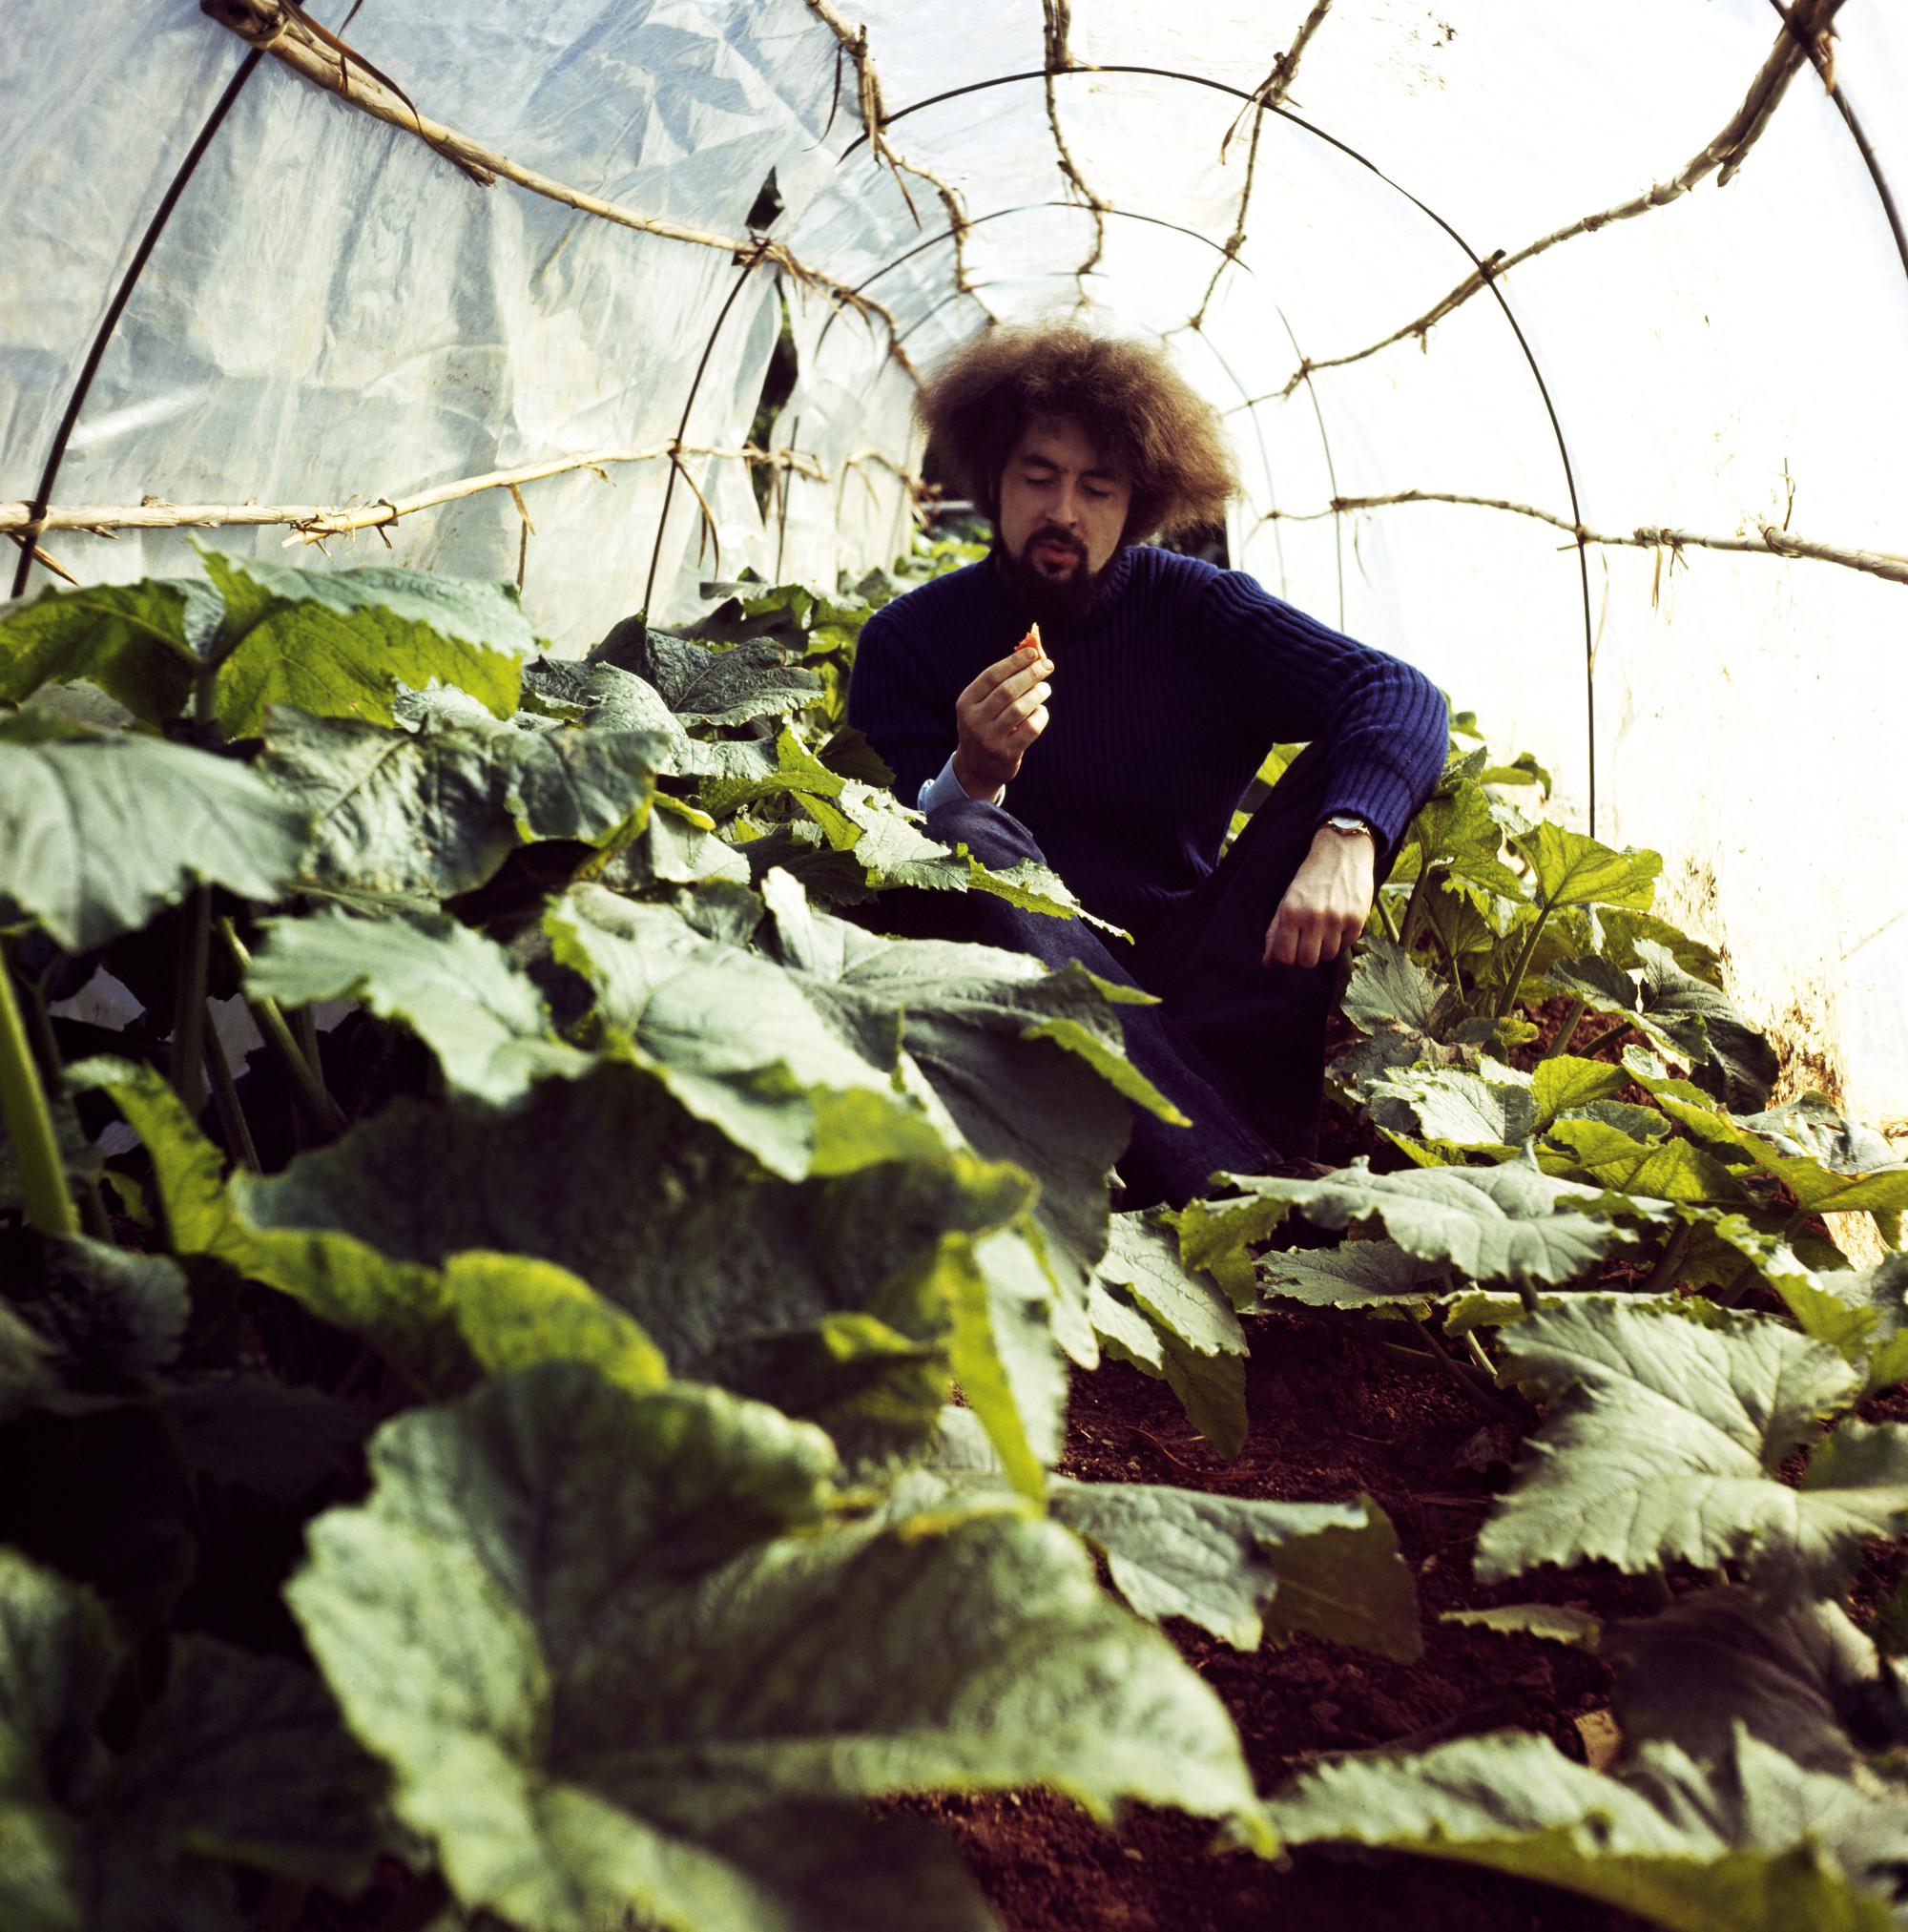 Carlo Caldini in the vegetable garden, S-Space Mondial Festival, 1971